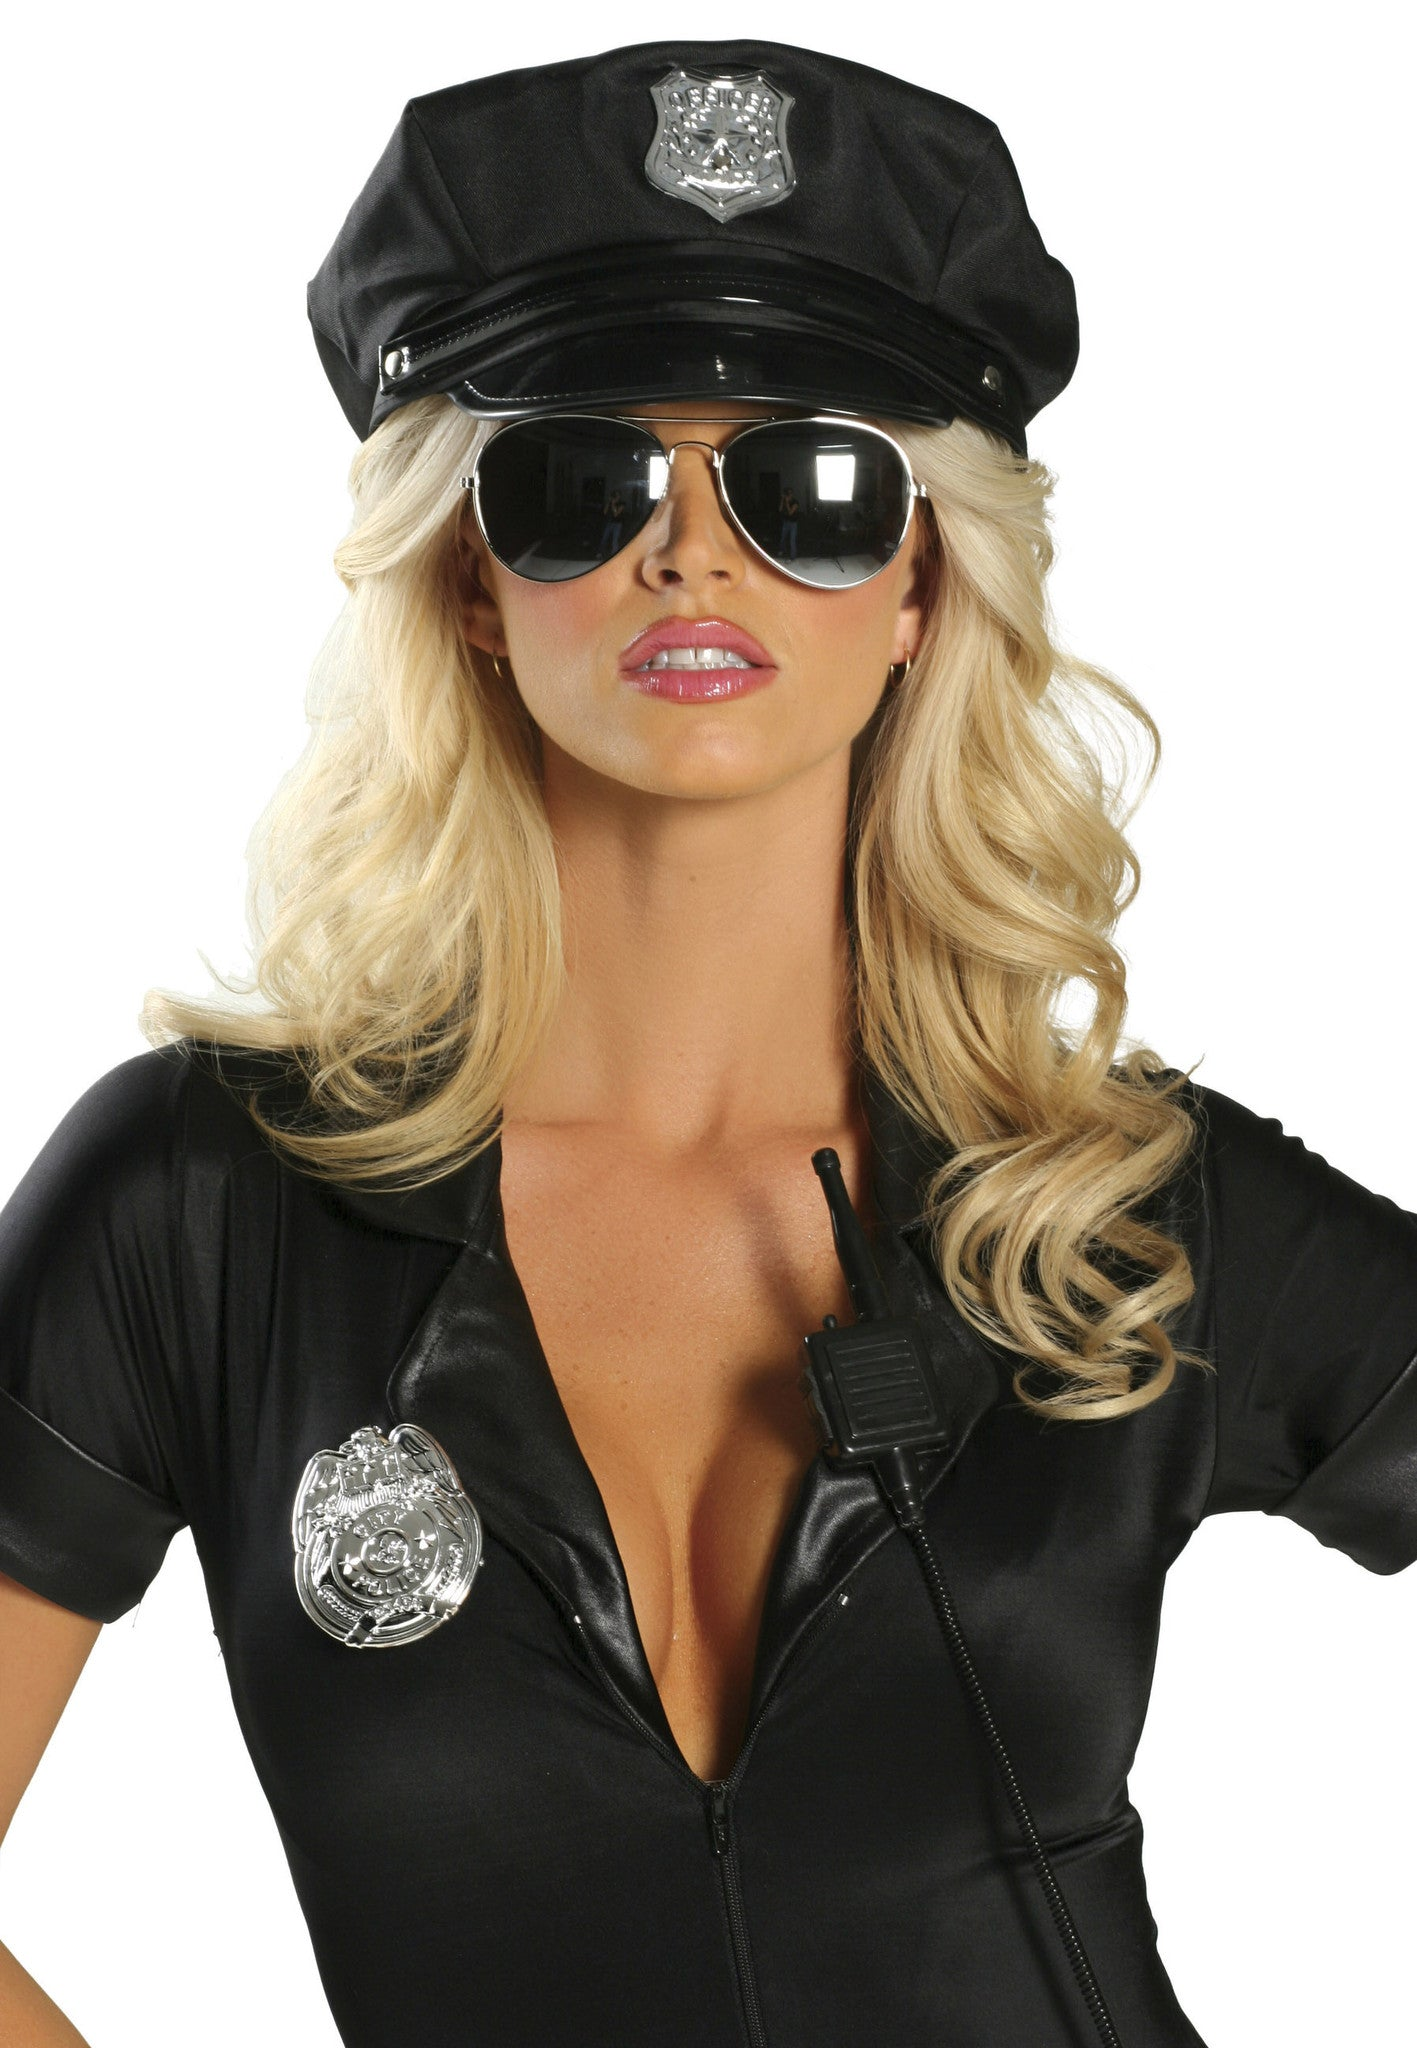 CH105 - Police Hat ${description} | Roma Costume and Roma Confidential wholesale manufacturer of Women Apparel bulk world wide wholesale and world wide drop ship services for Adult Halloween Costumes, Sexy and Elegant Lingerie, Rave Clothing, Club wear, and Christmas Costumes. Accessories, Roma Costume, Inc., Roma Costume, Roma Confidential, Wholesale clothing, drop ship, drop ship service, Wholesale Lingerie, Wholesale Adult Halloween Costumes, Rave Clothing, EDM Clothing, Festival Wear, Christmas Costumes, Clubwear, Club wear.